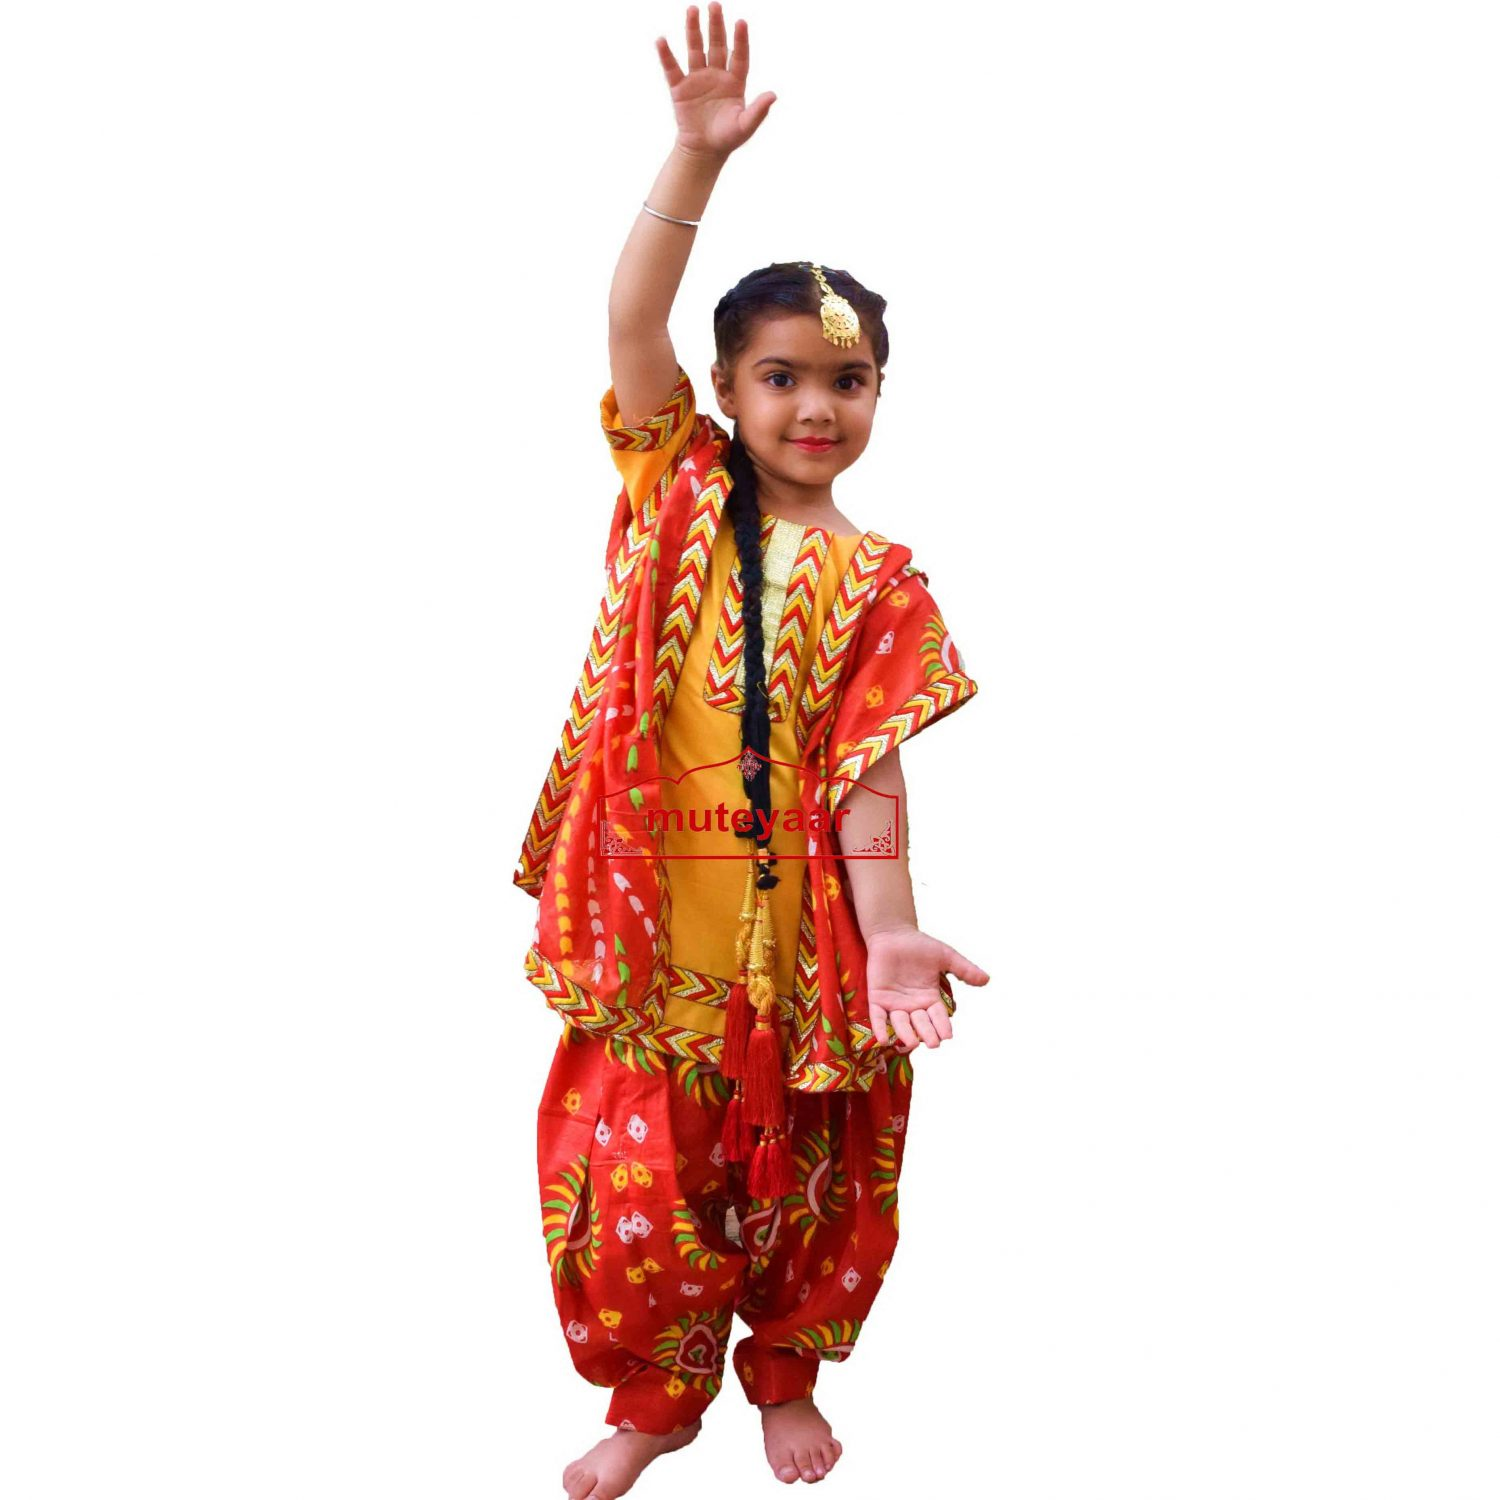 Kids Bhangra Costume outfit dance dress with Accesories - Custom made 1